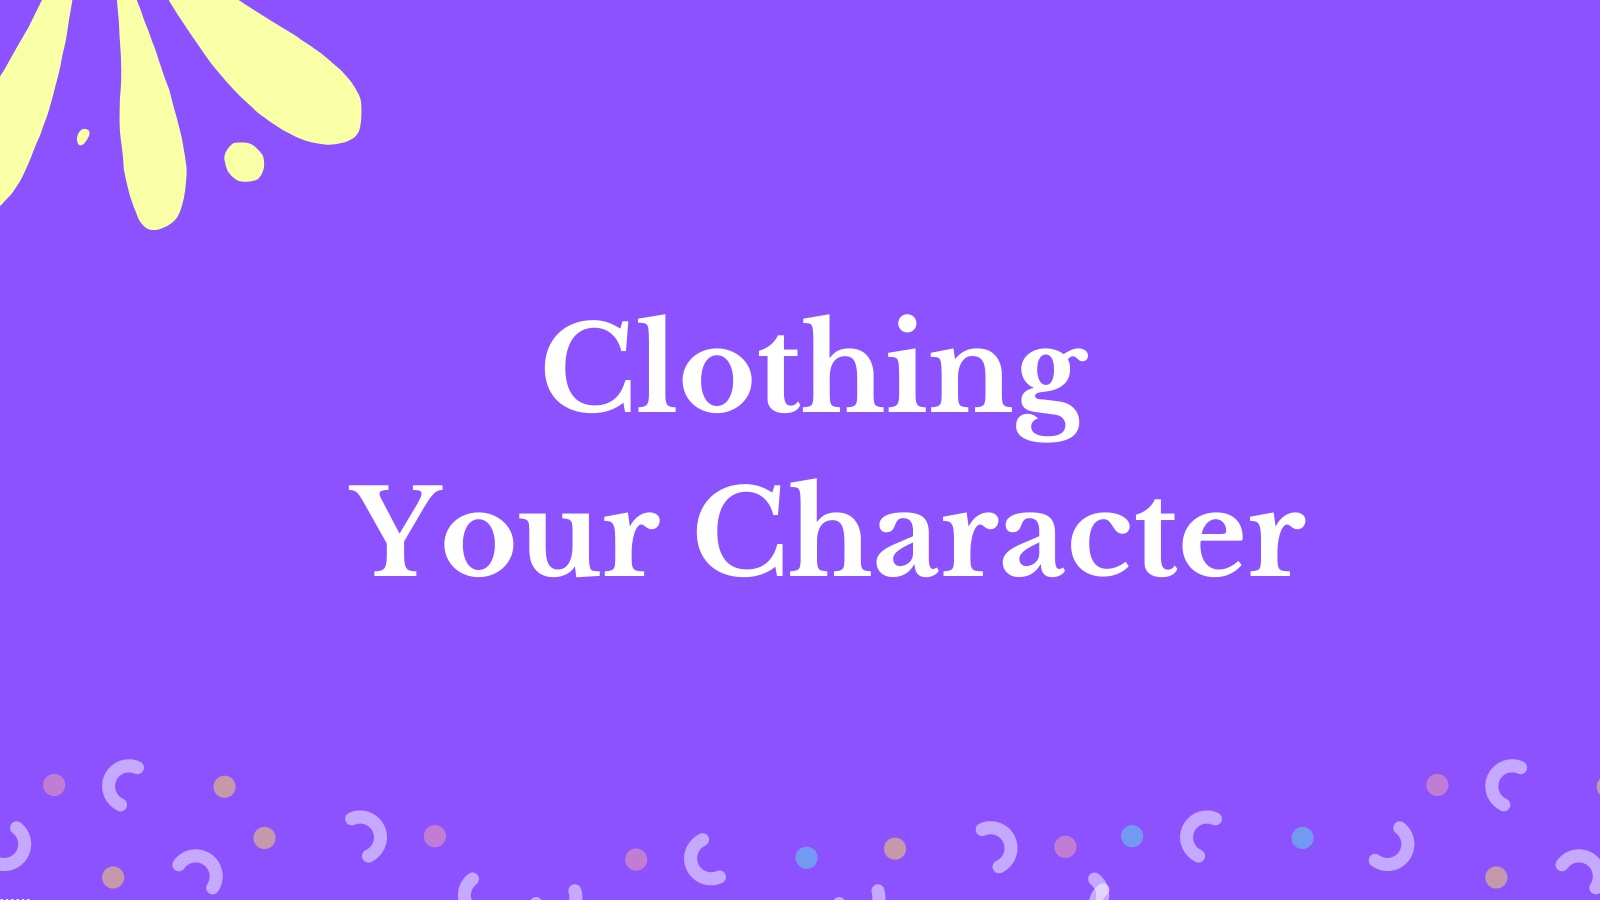 Clothing Your Character - Writing Challenge